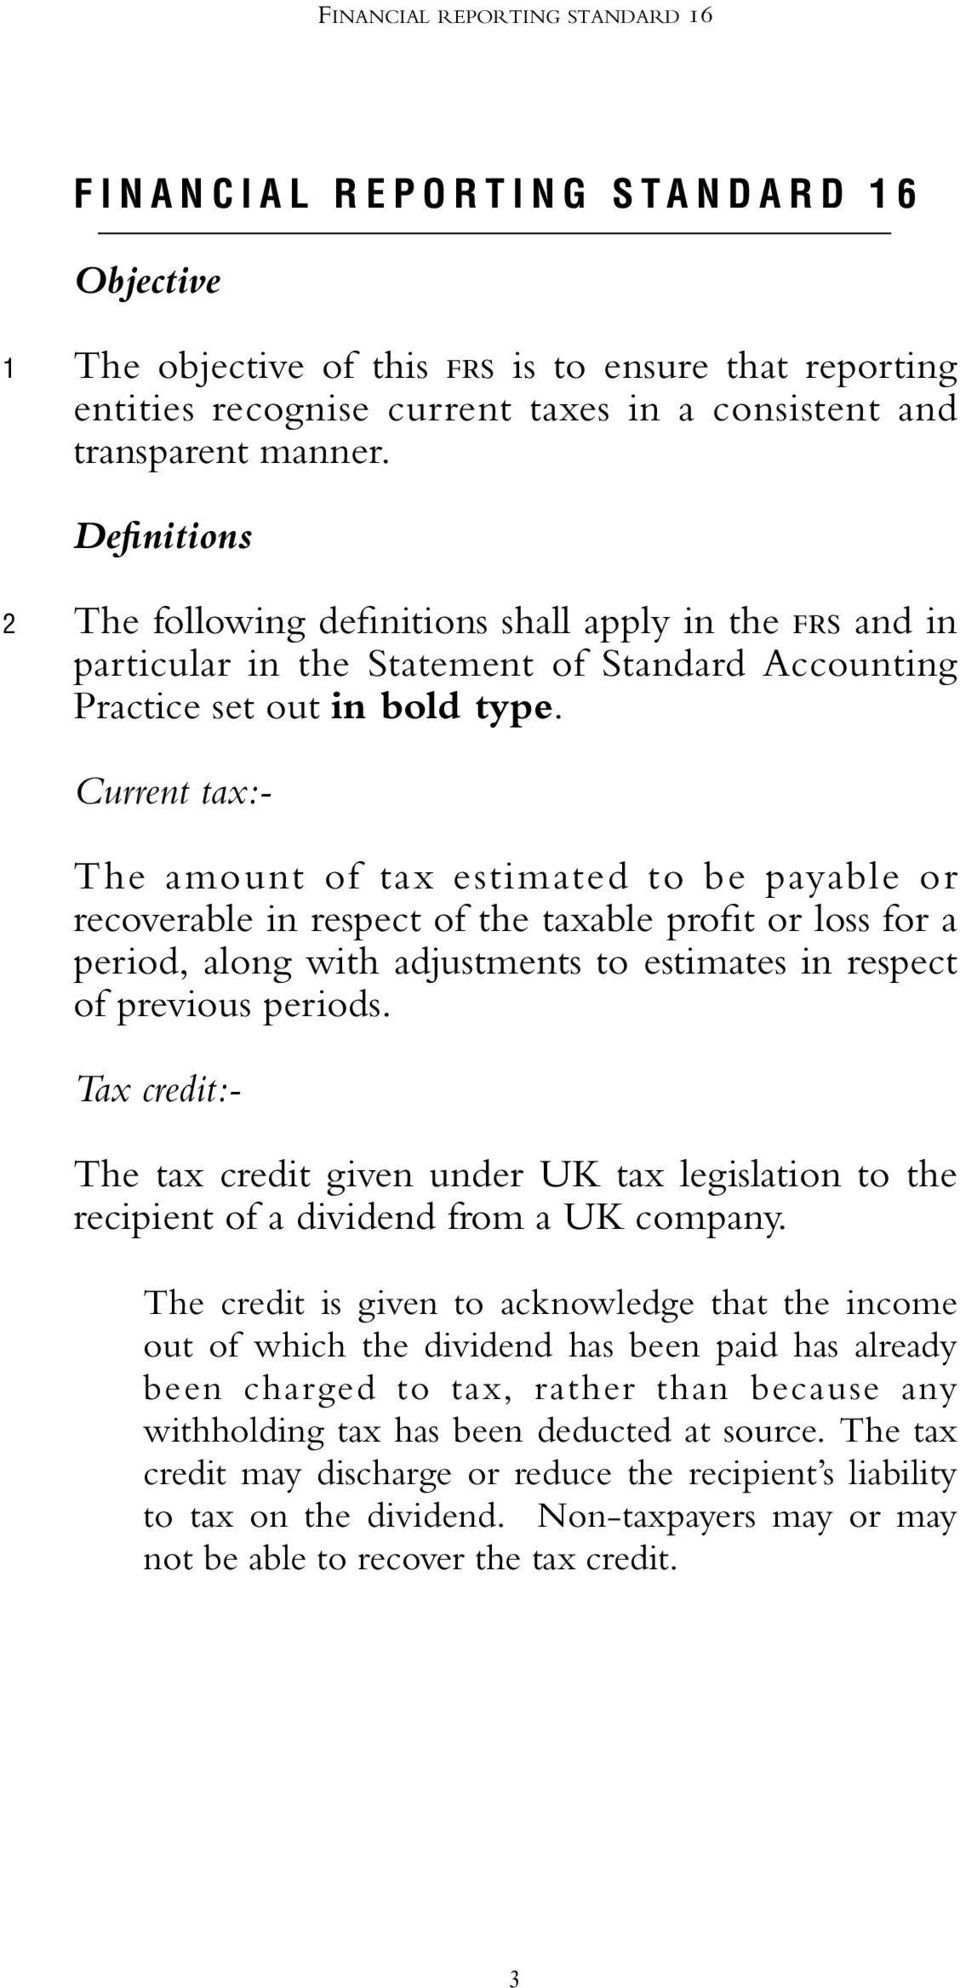 Current tax:- The amount of tax estimated to be payable or recoverable in respect of the taxable profit or loss for a period, along with adjustments to estimates in respect of previous periods.